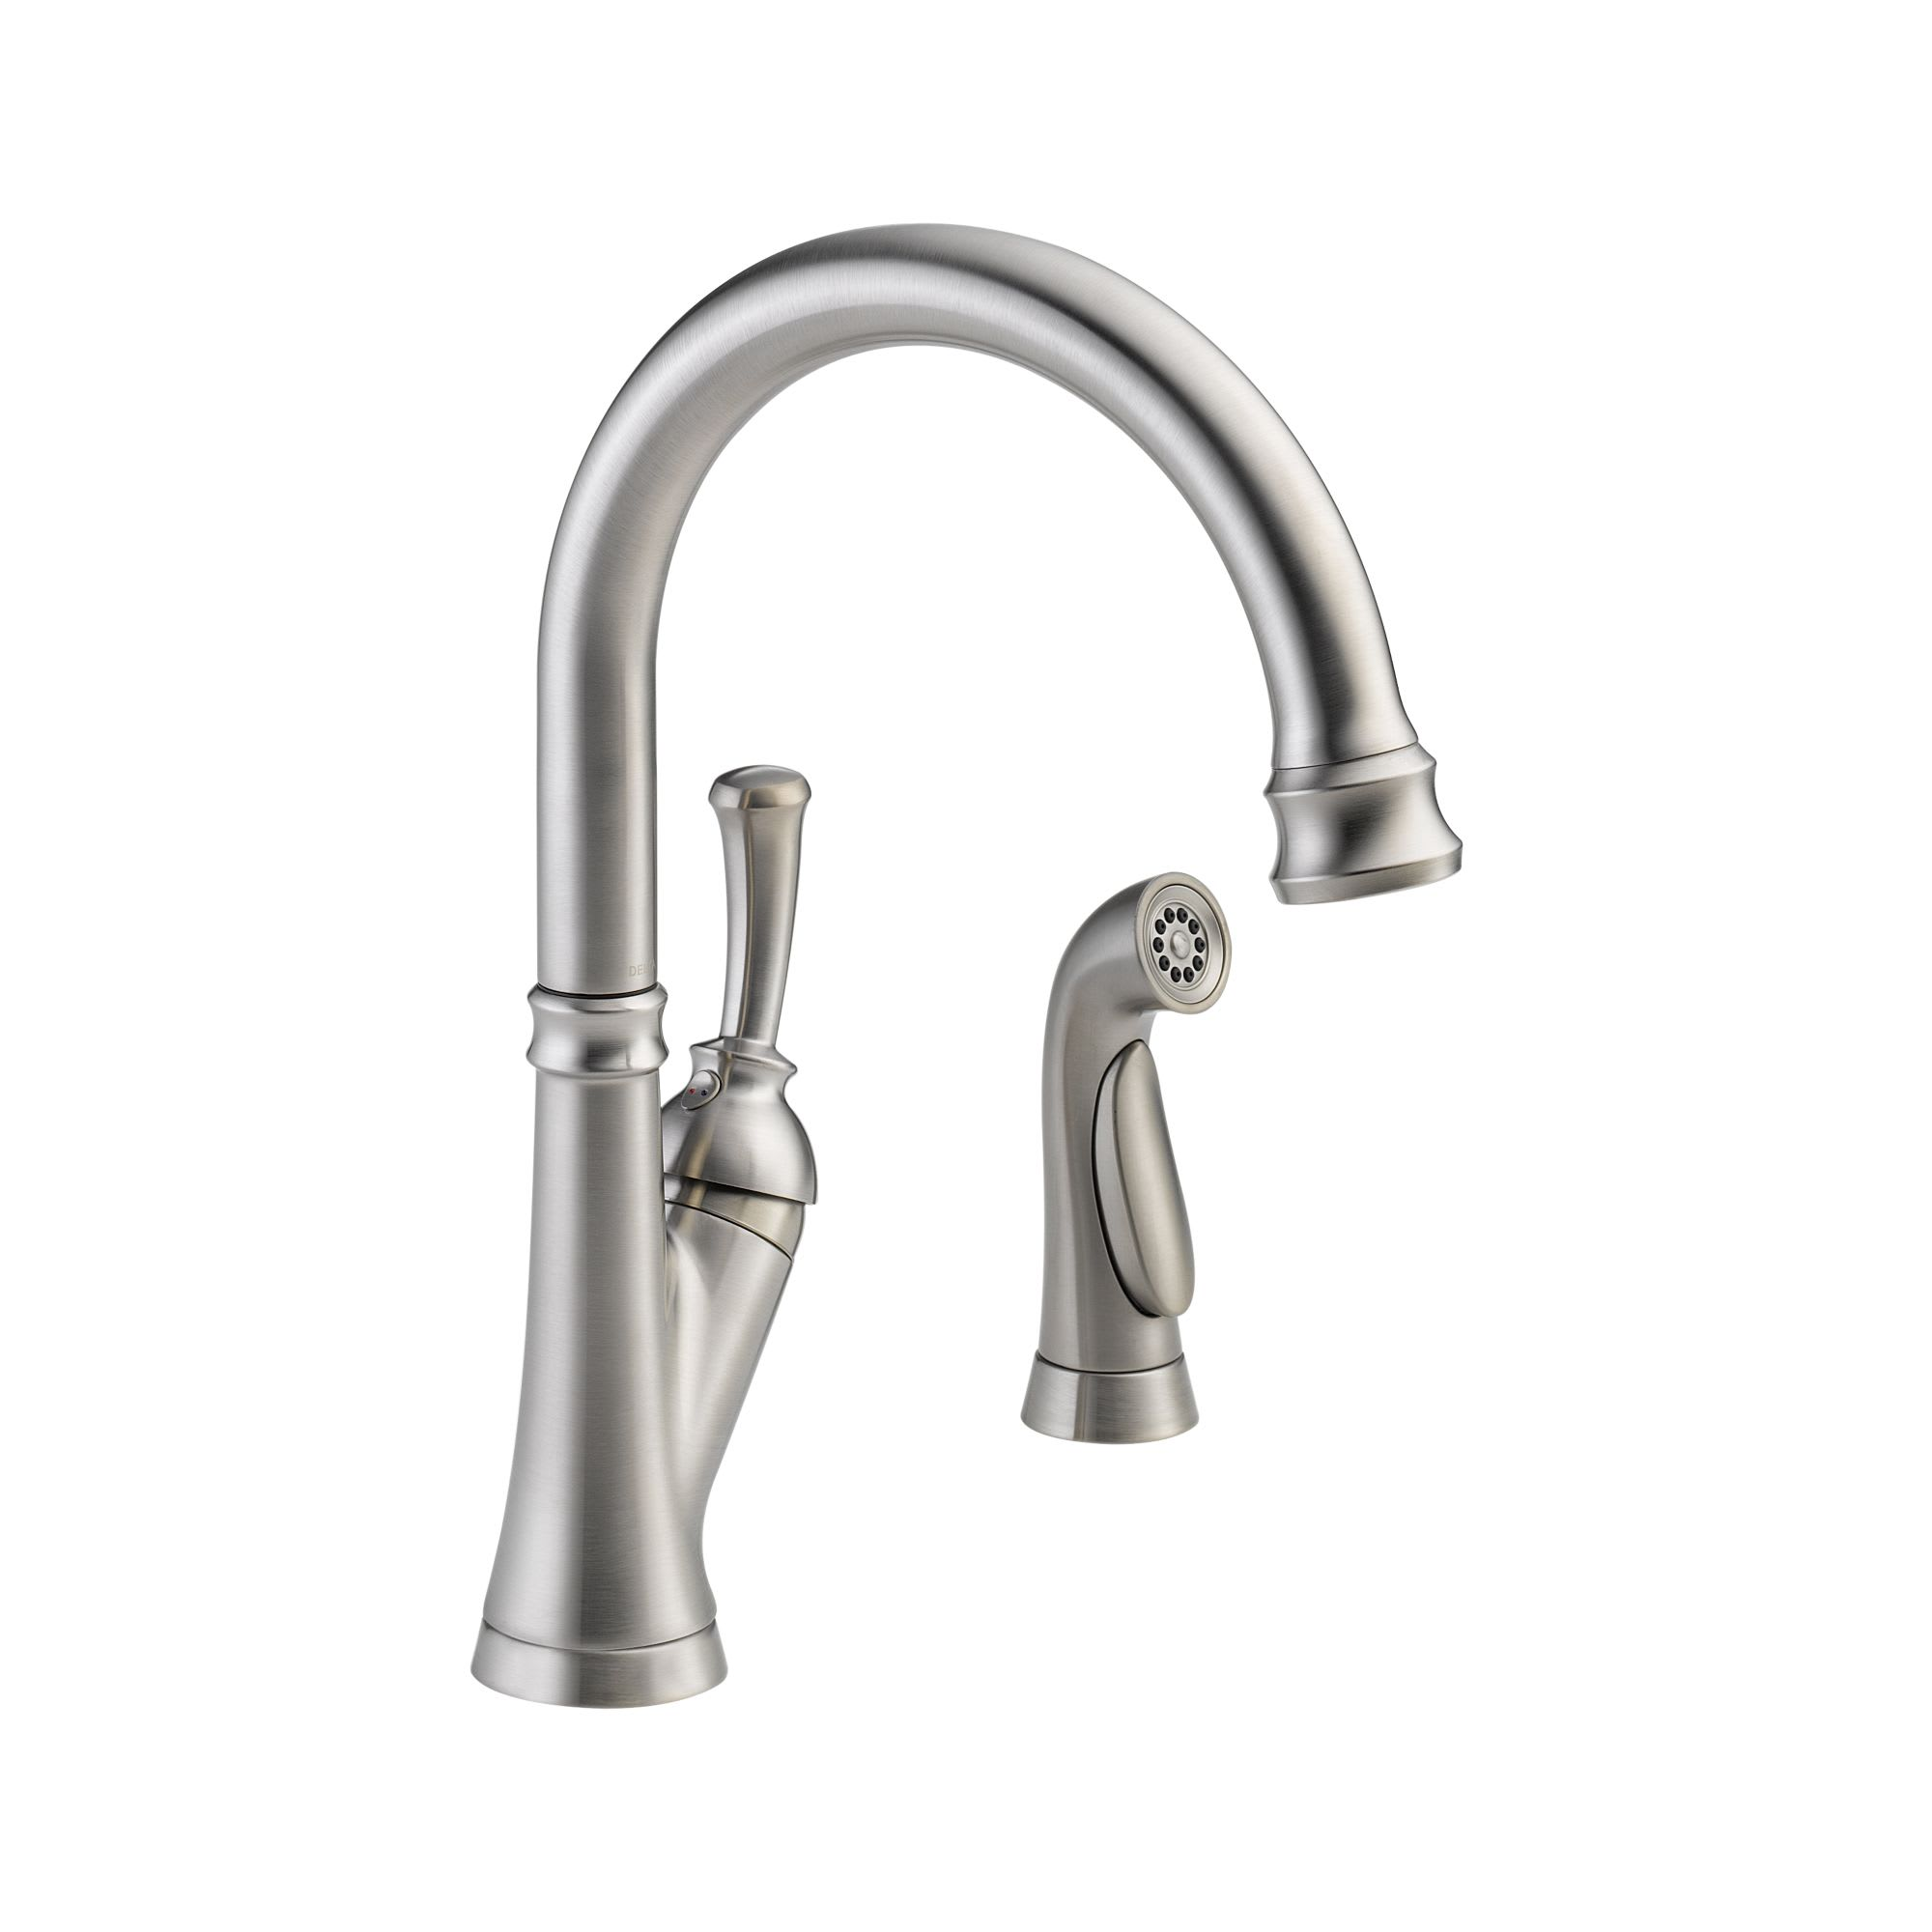 faucet lovely kitchen faucets handle stainless lahara down collection delta pull savile fresh